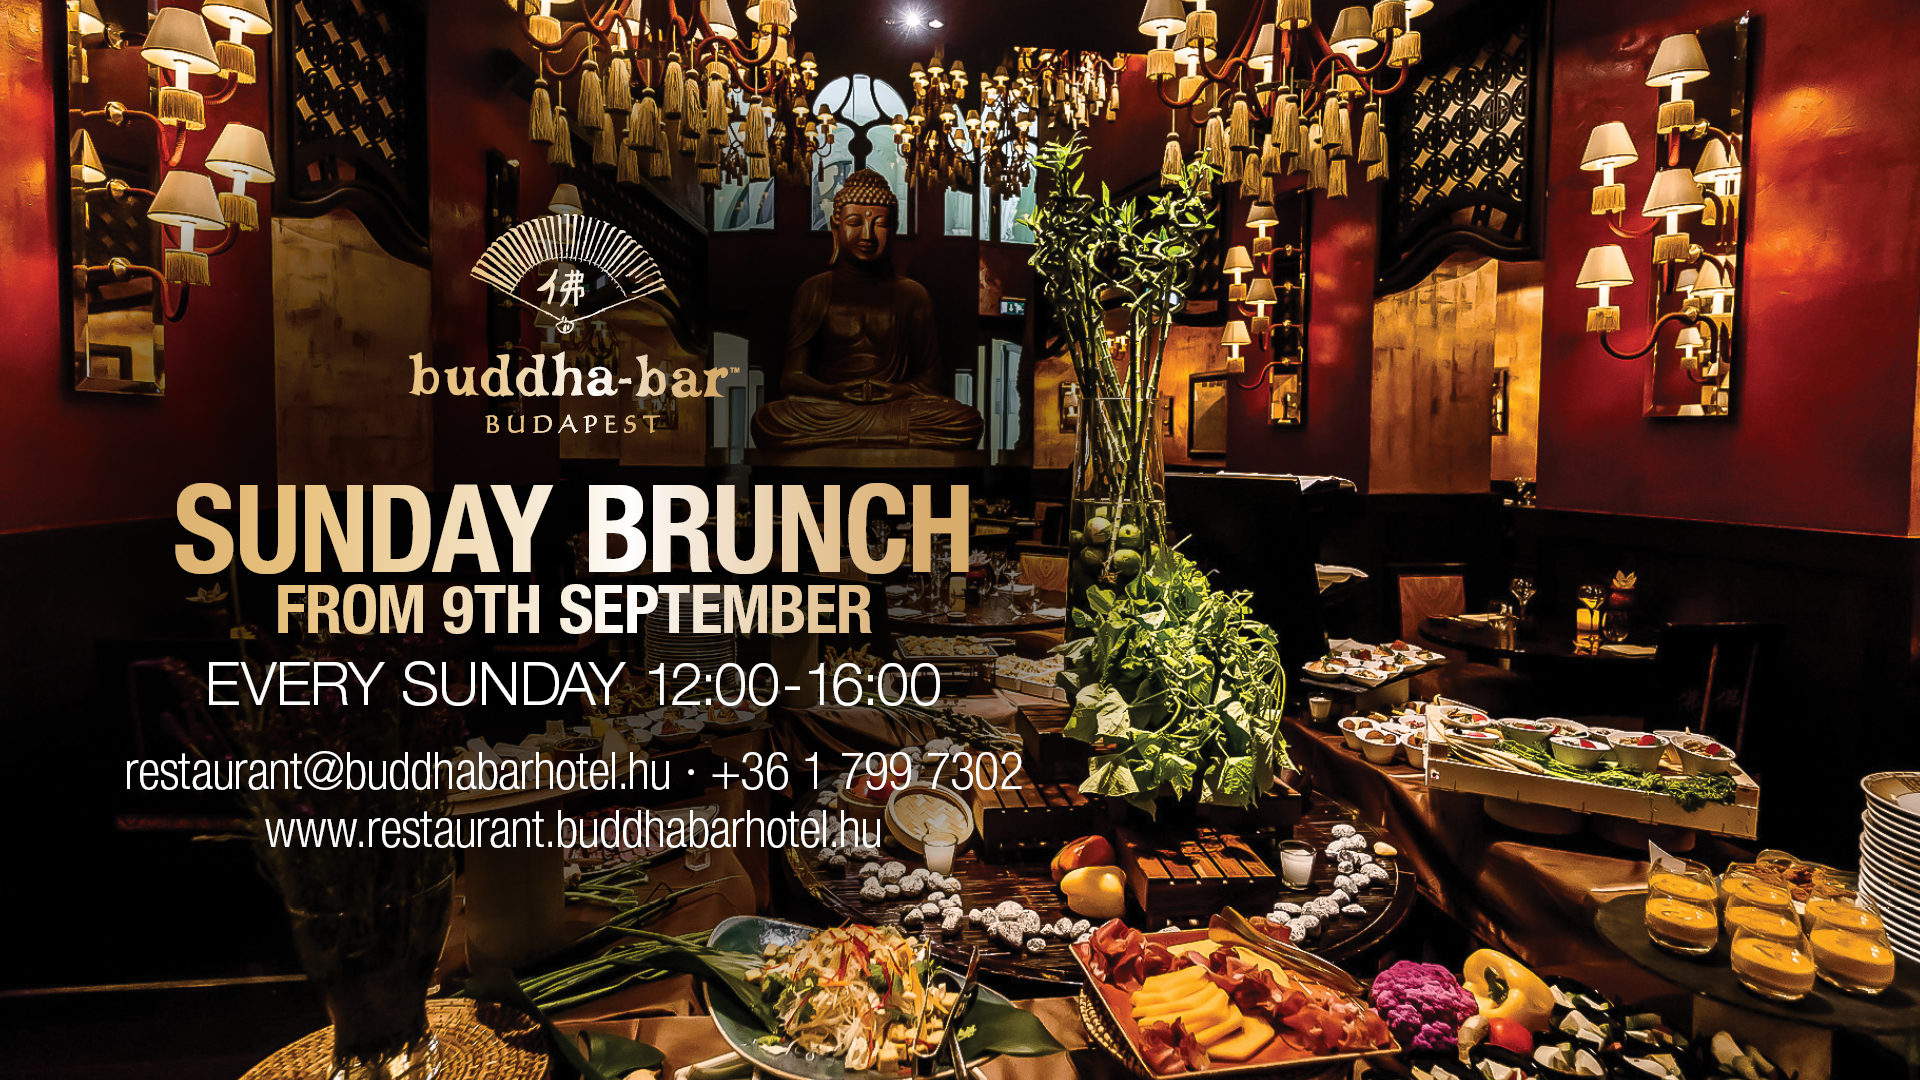 Asian Style Sunday Brunch Back Soon At Buddha-Bar Budapest